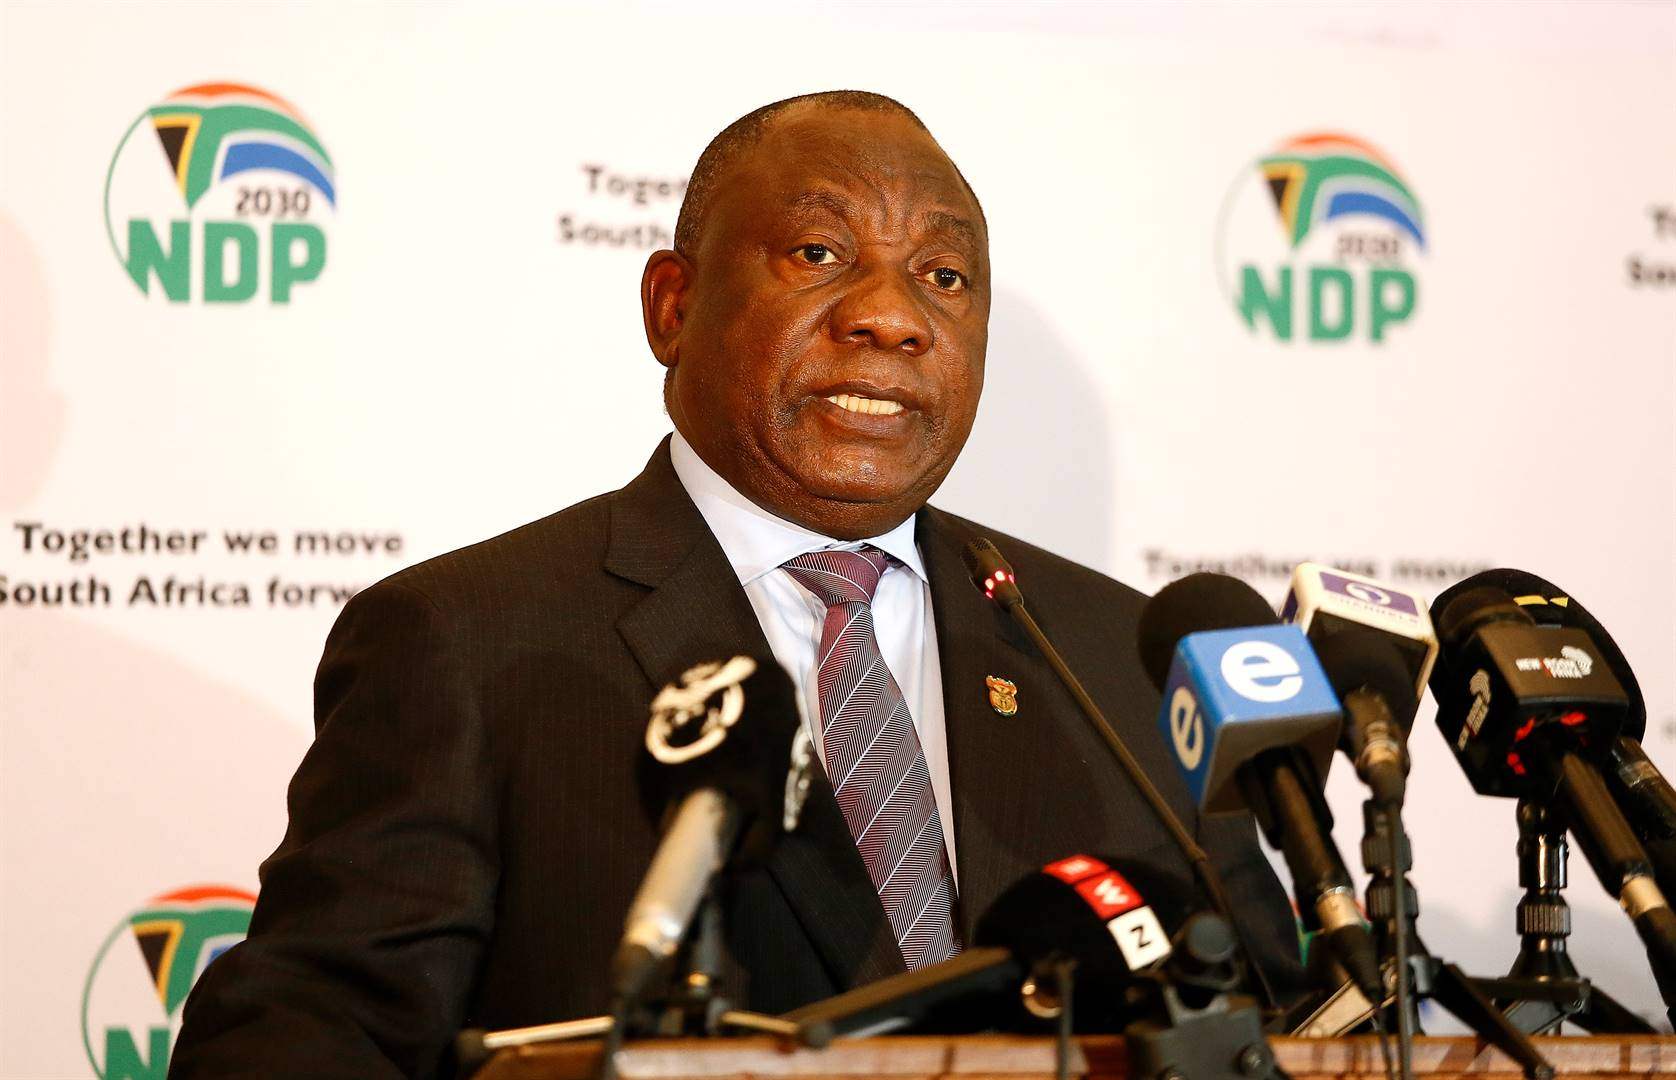 Ramaphosa To Address The Nation On Sunday More Restrictions On The Cards News24